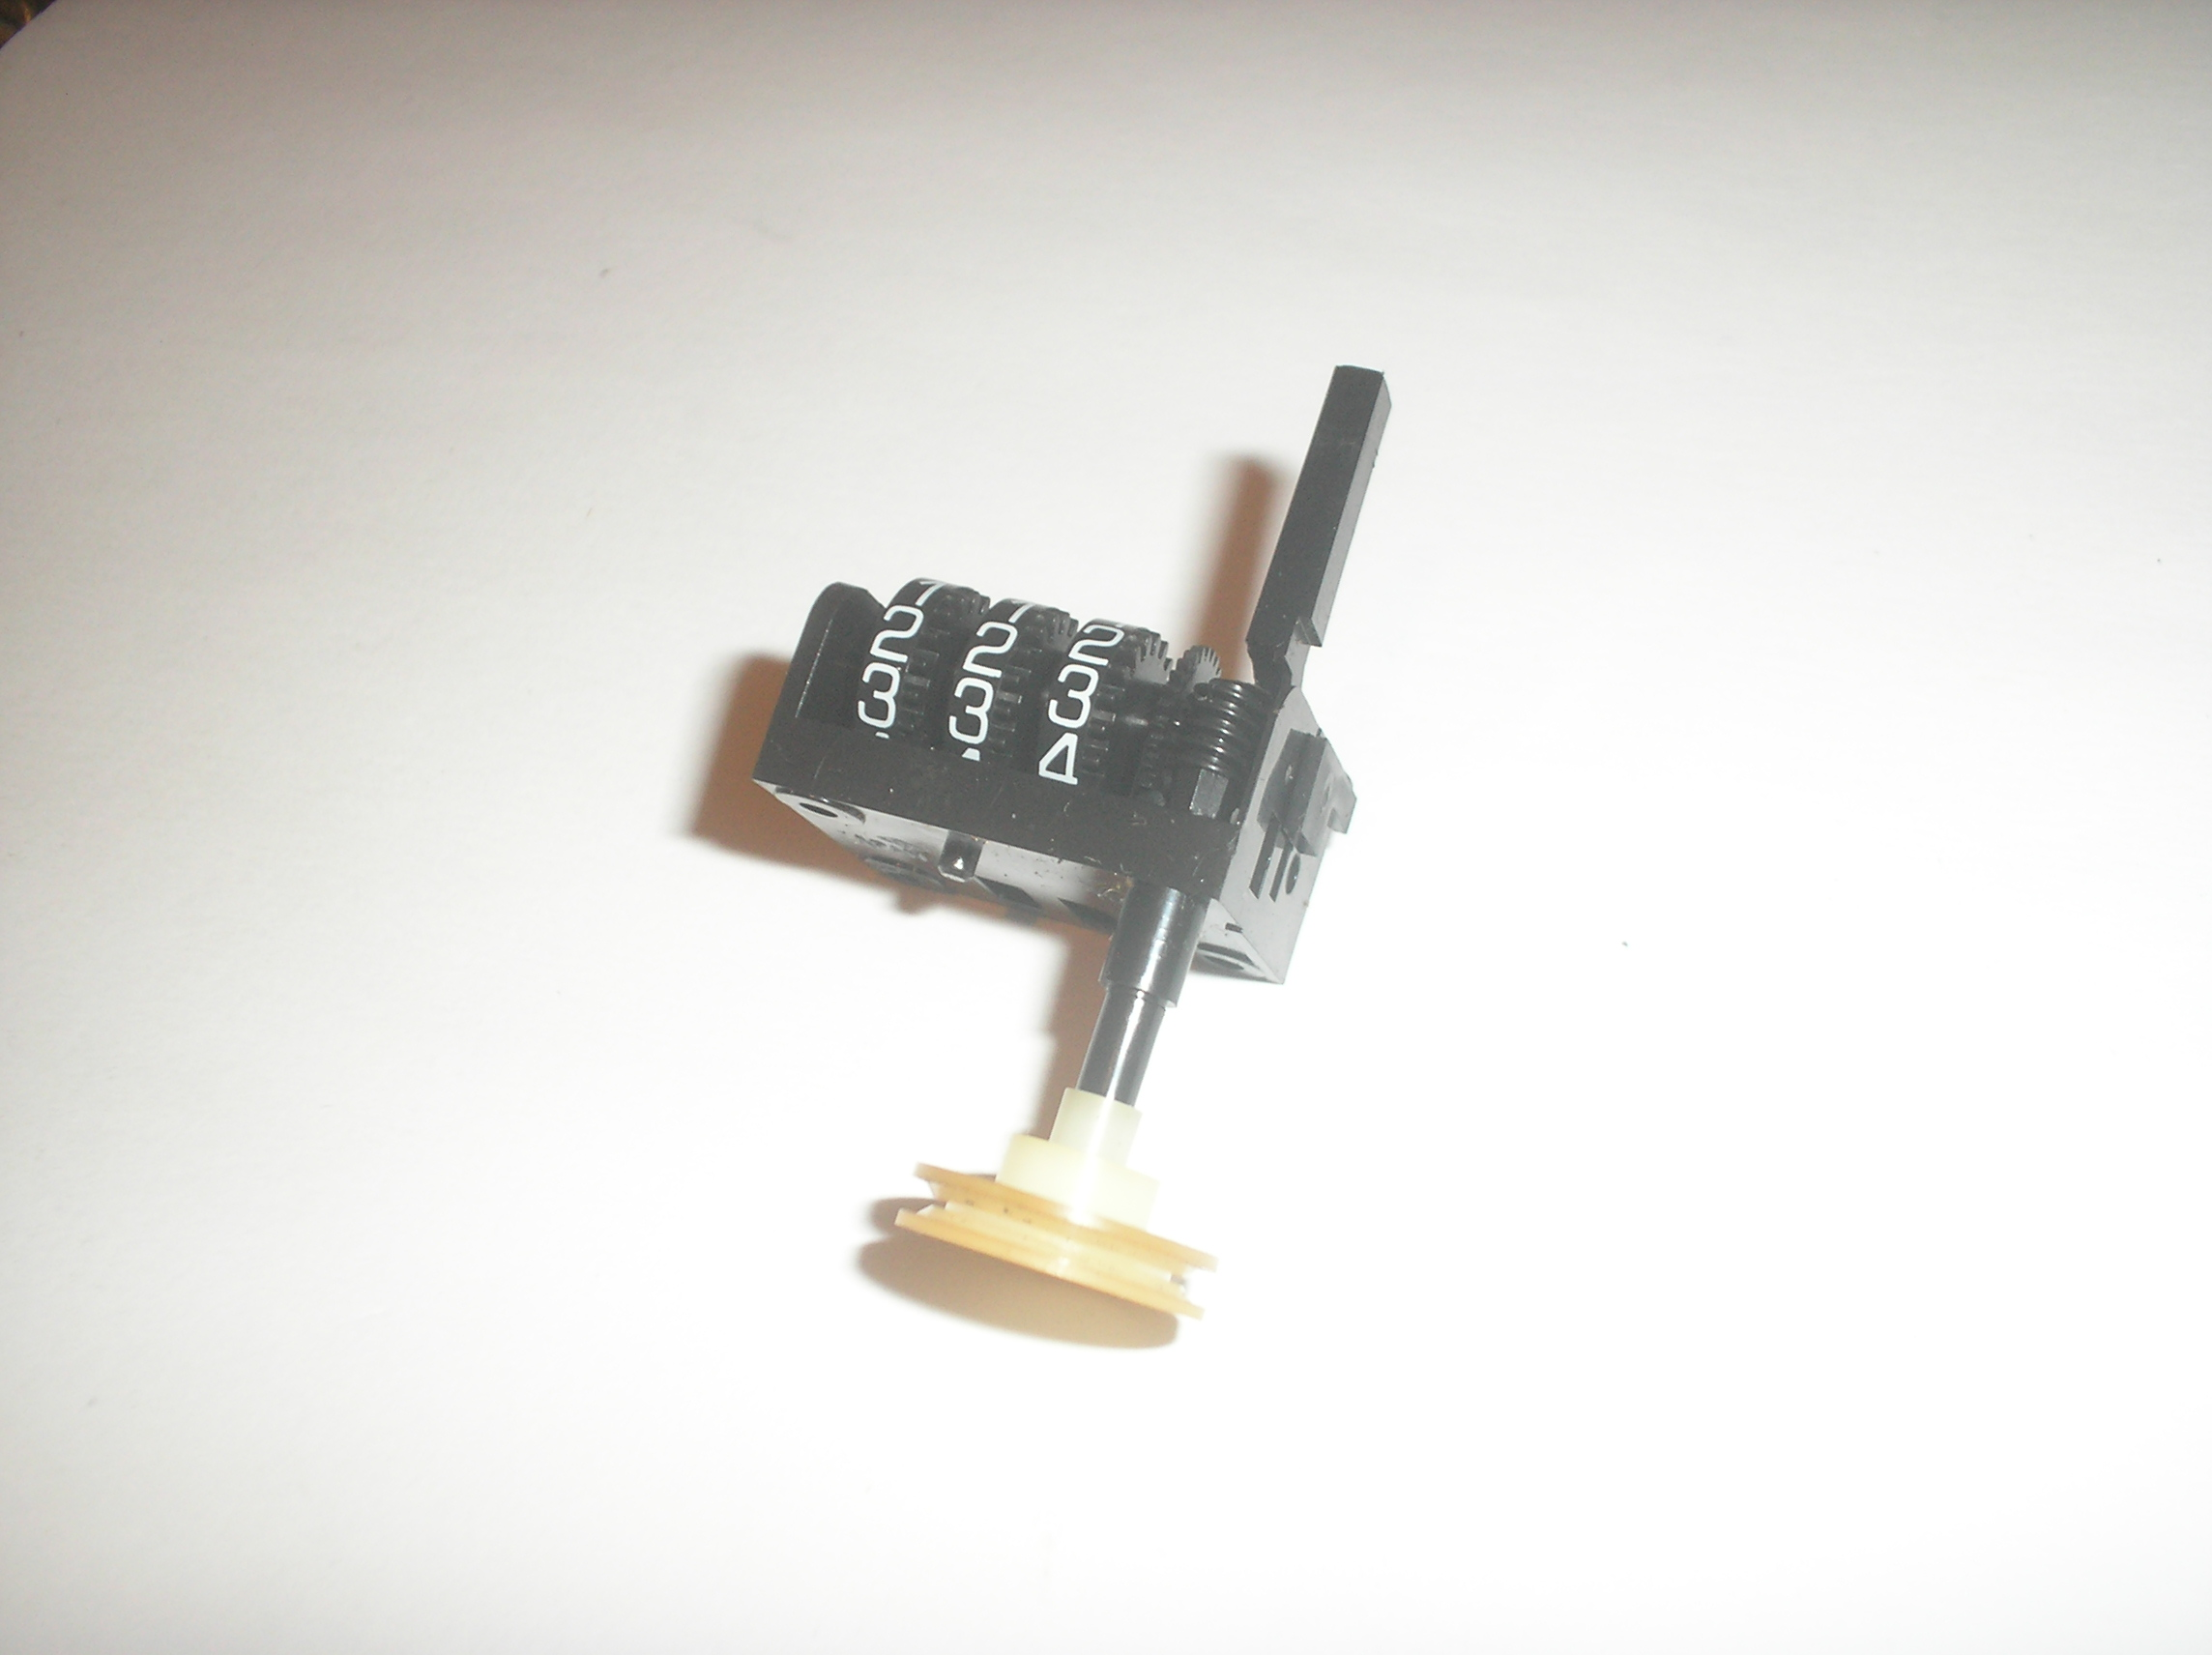 RS-T230 Tape Counter Assy.  item is used. Technics part number 5LN32